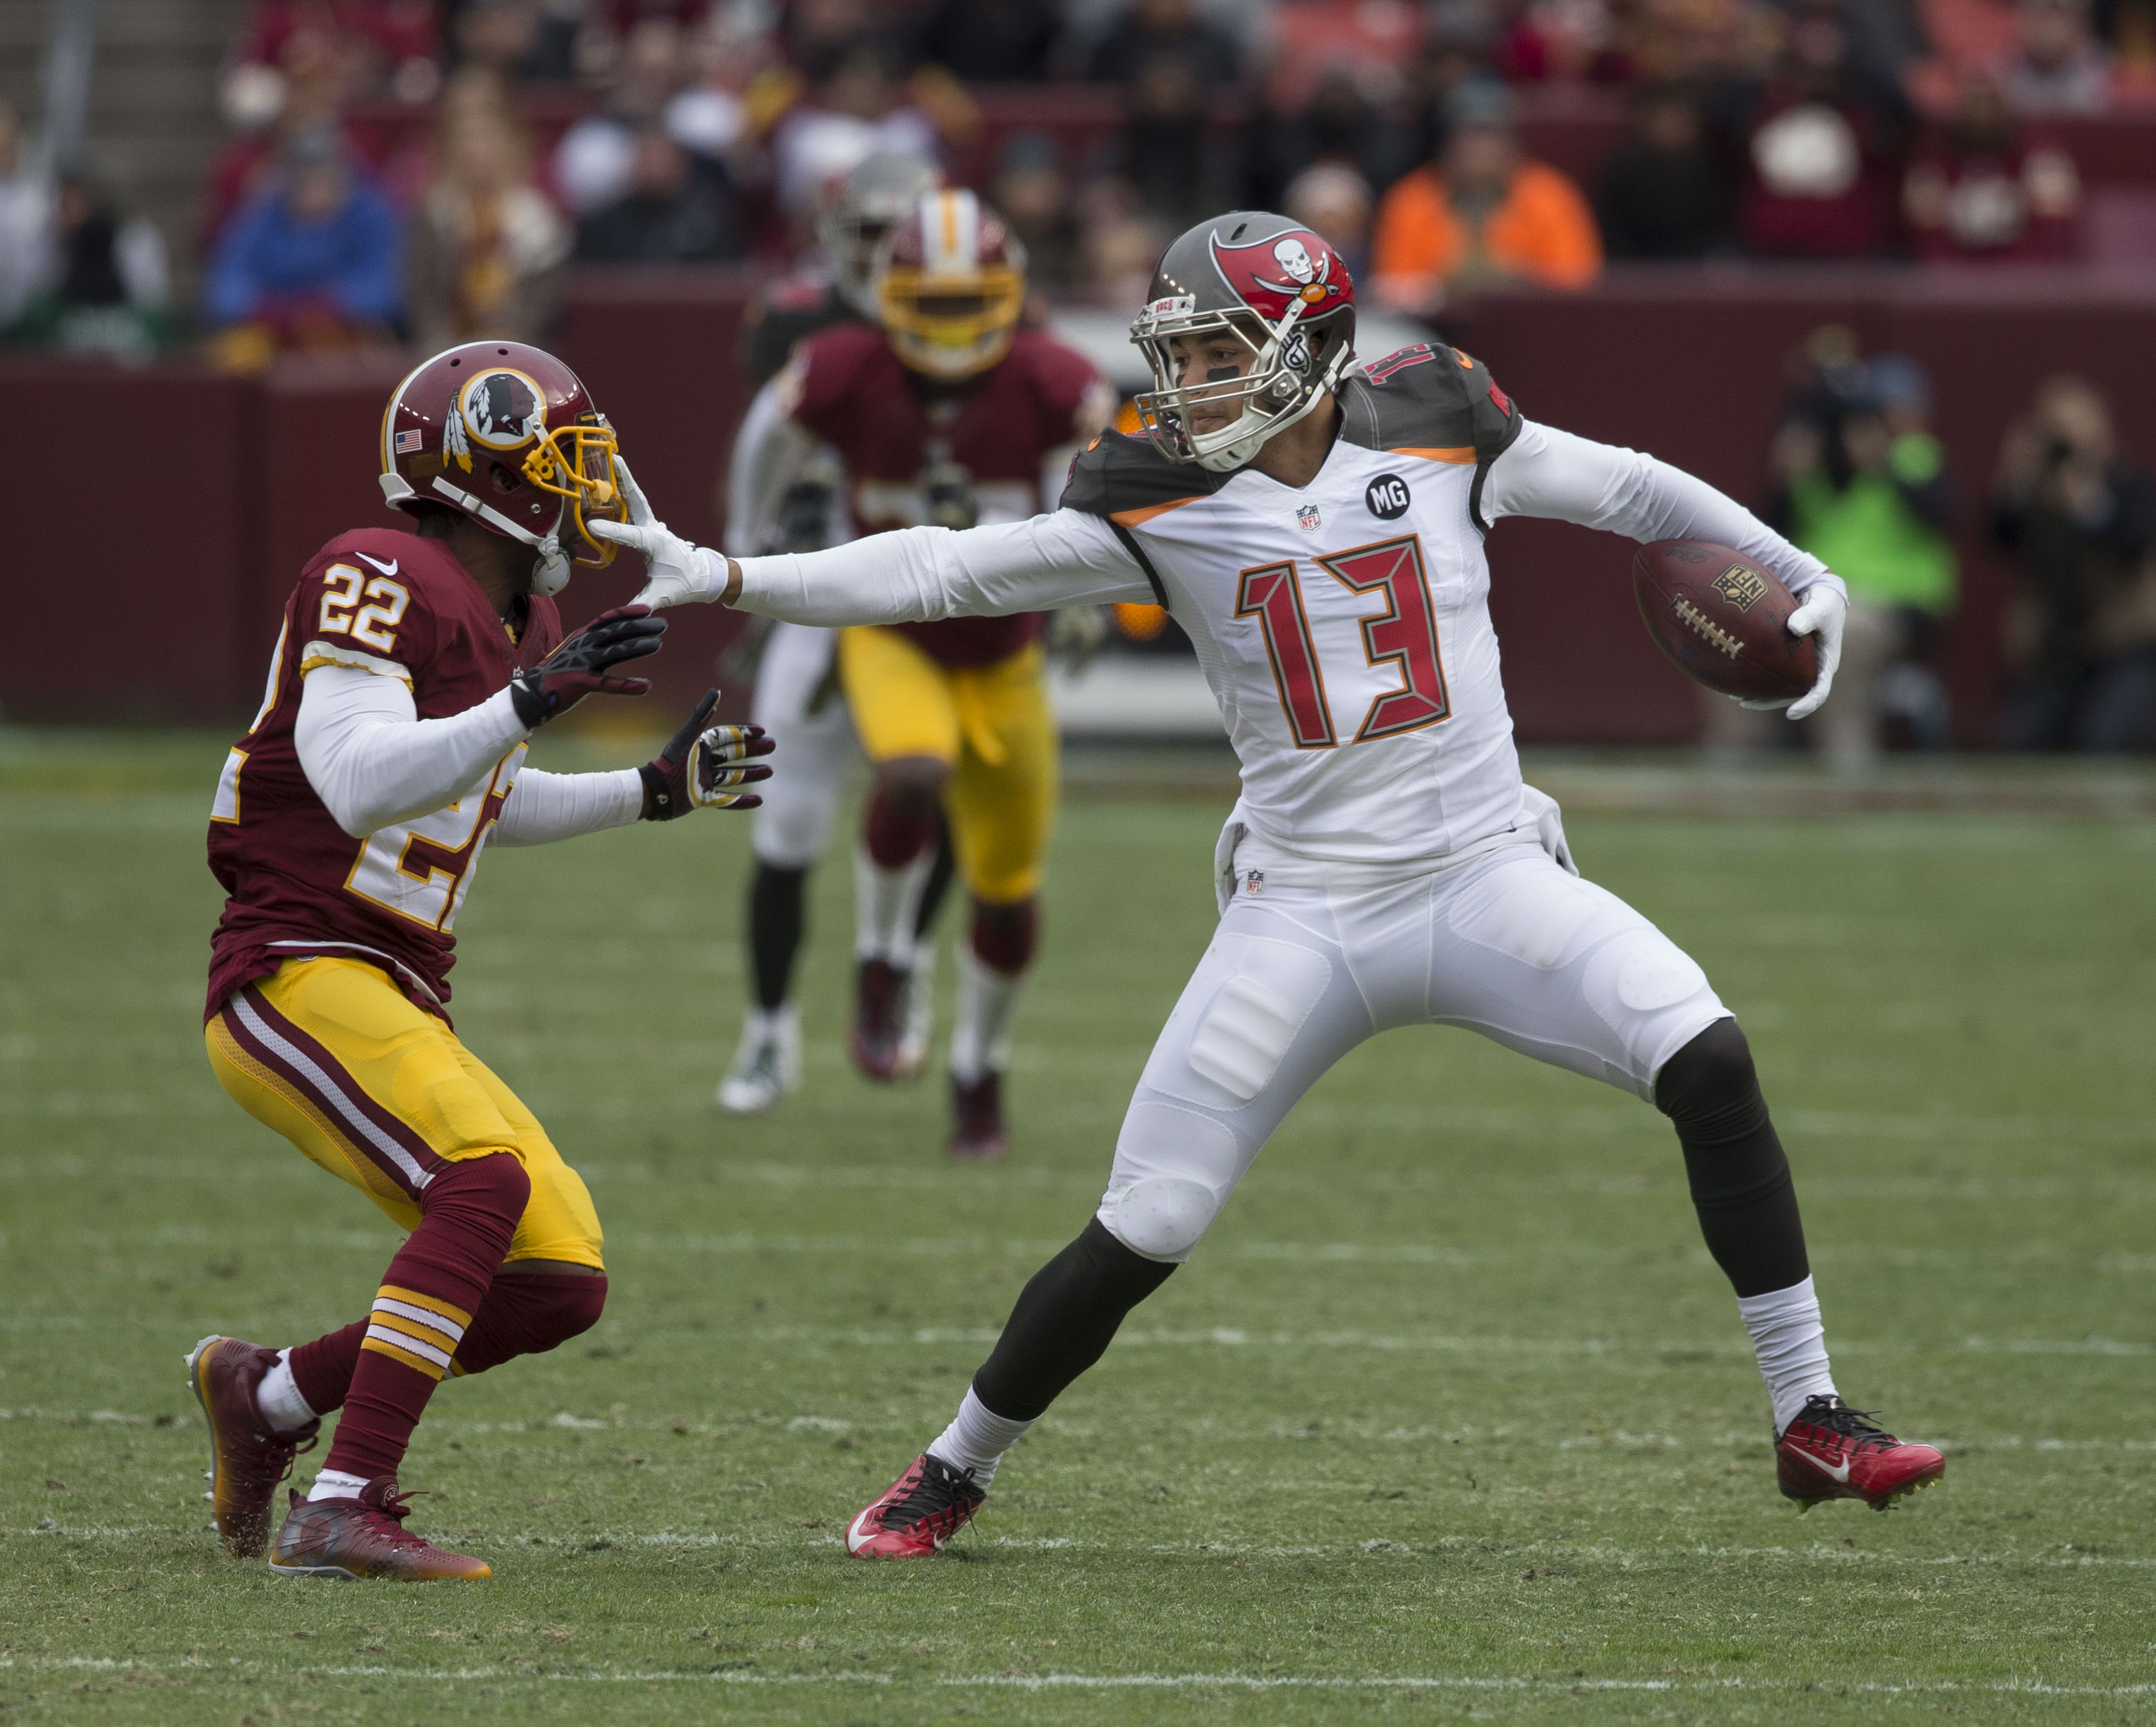 File Mike Evans vs Redskins November 16 2014 Wikimedia mons